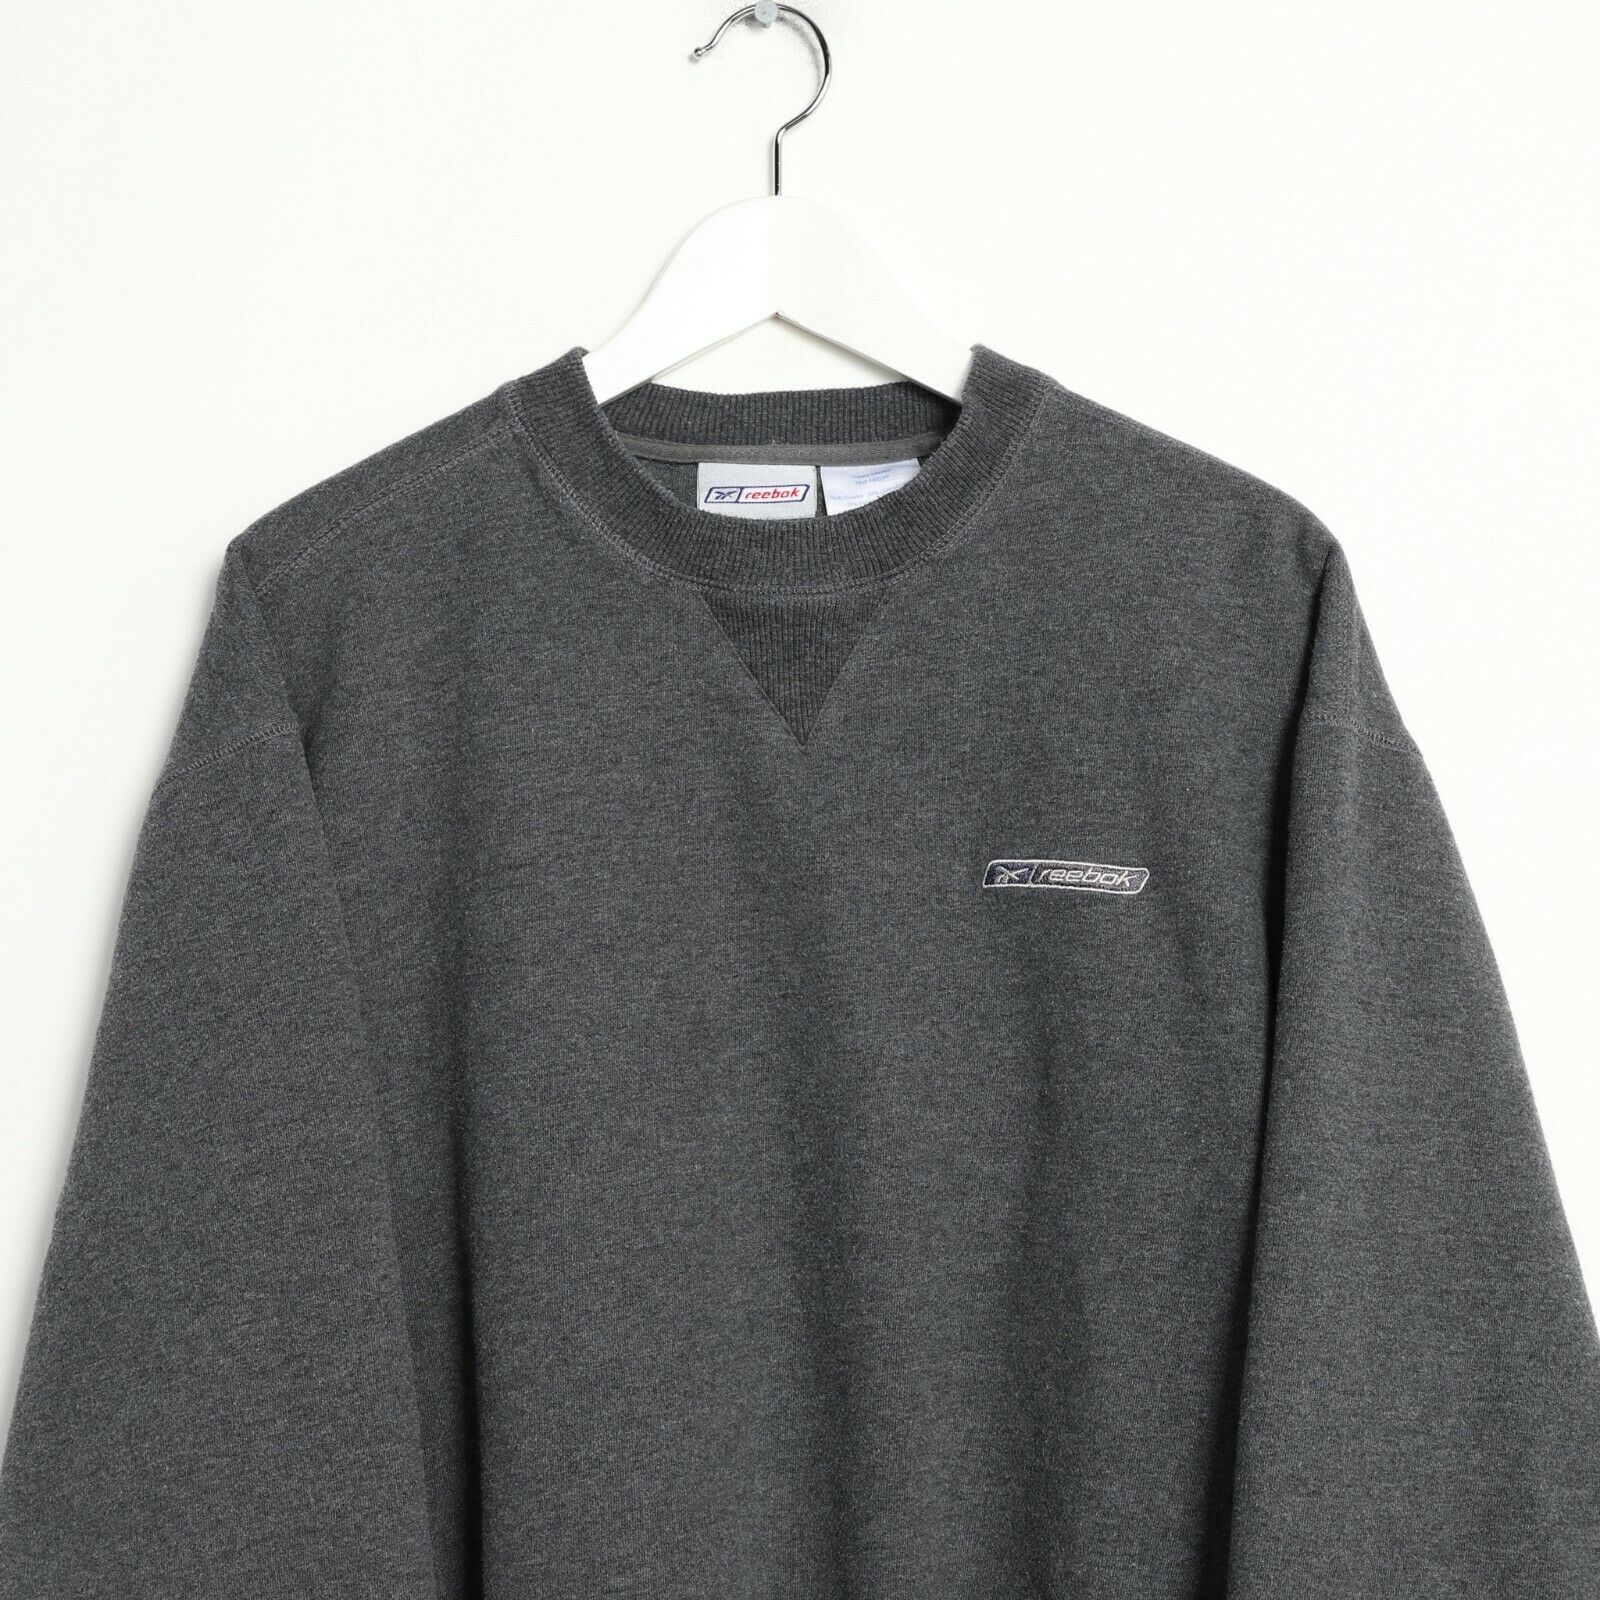 Vintage REEBOK Small Logo Sweatshirt Jumper Grey | Large L